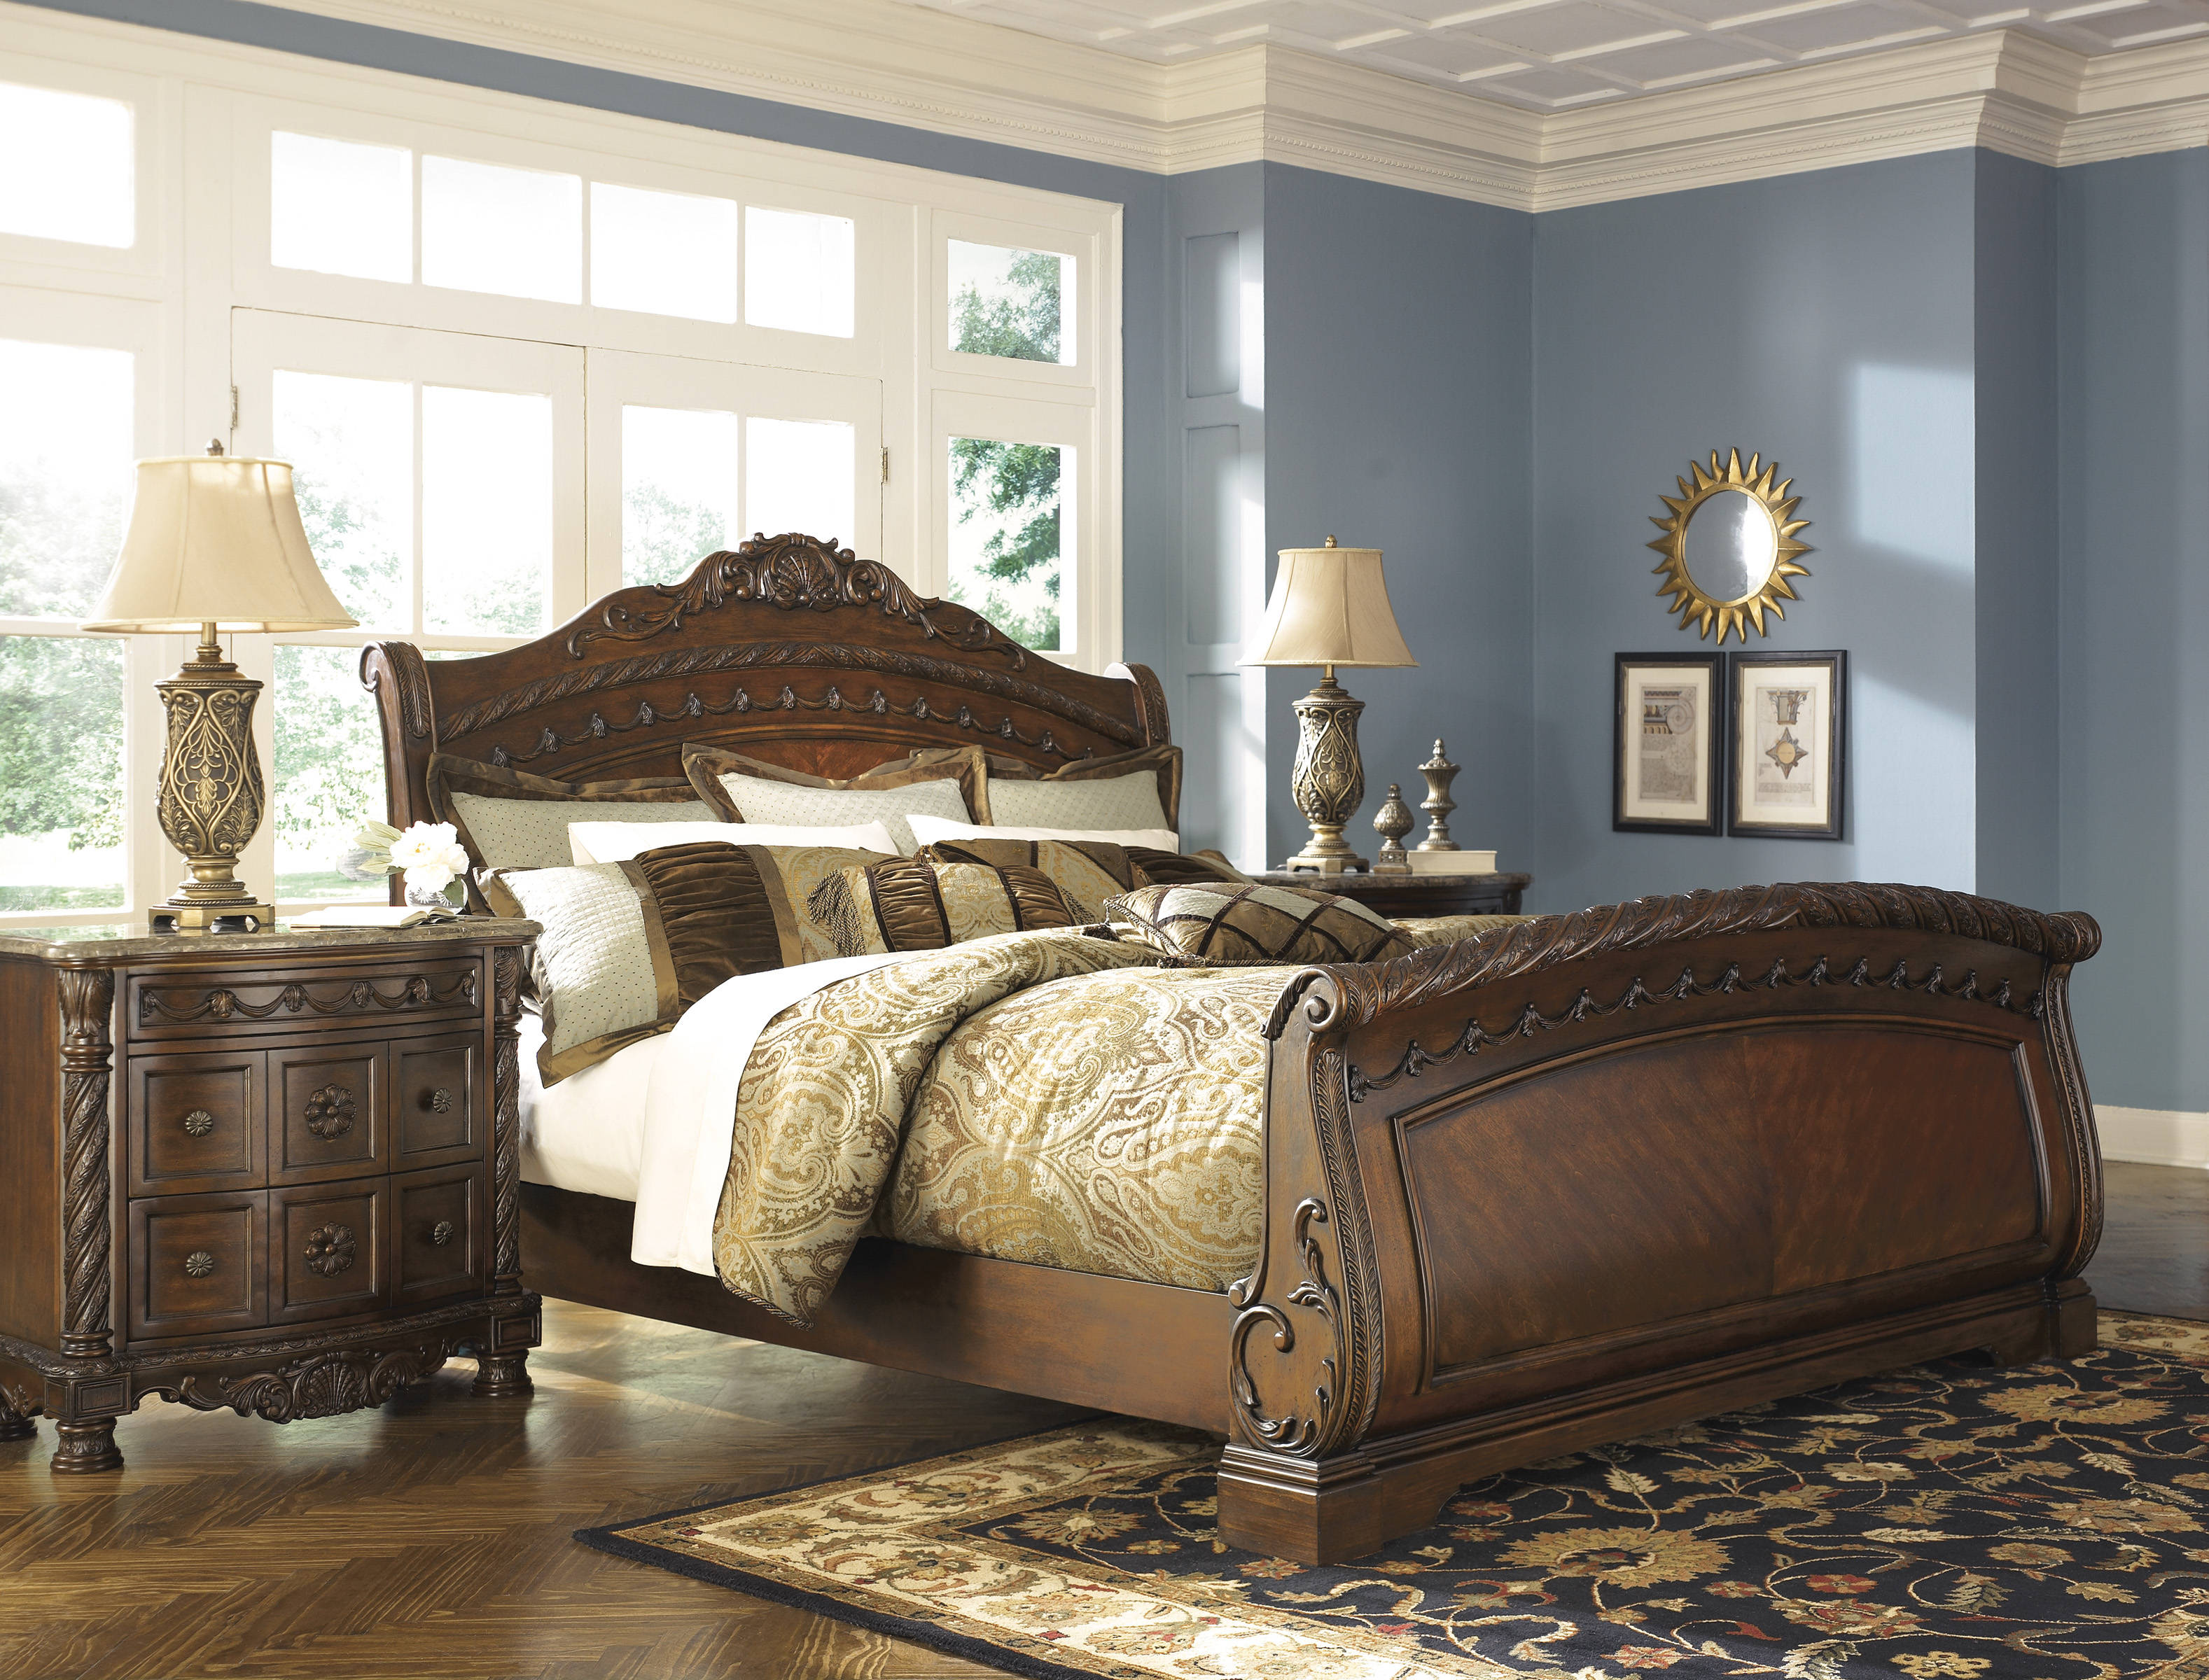 North Shore Bedroom Set Bedrooms The Classy Home